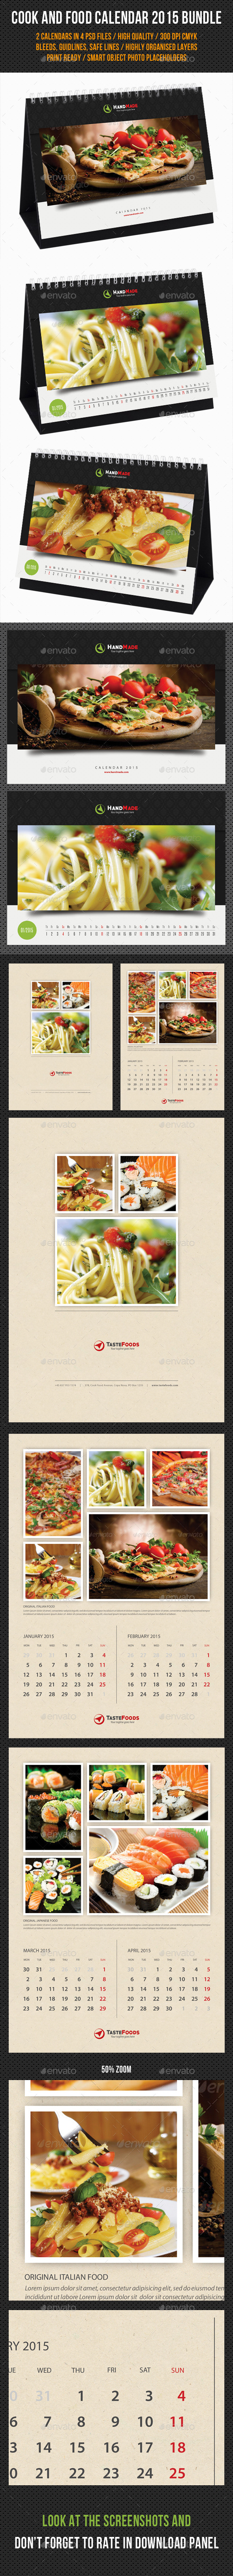 GraphicRiver 2 in 1 Cook And Food Calendar 2015 Bundle 02 9835788